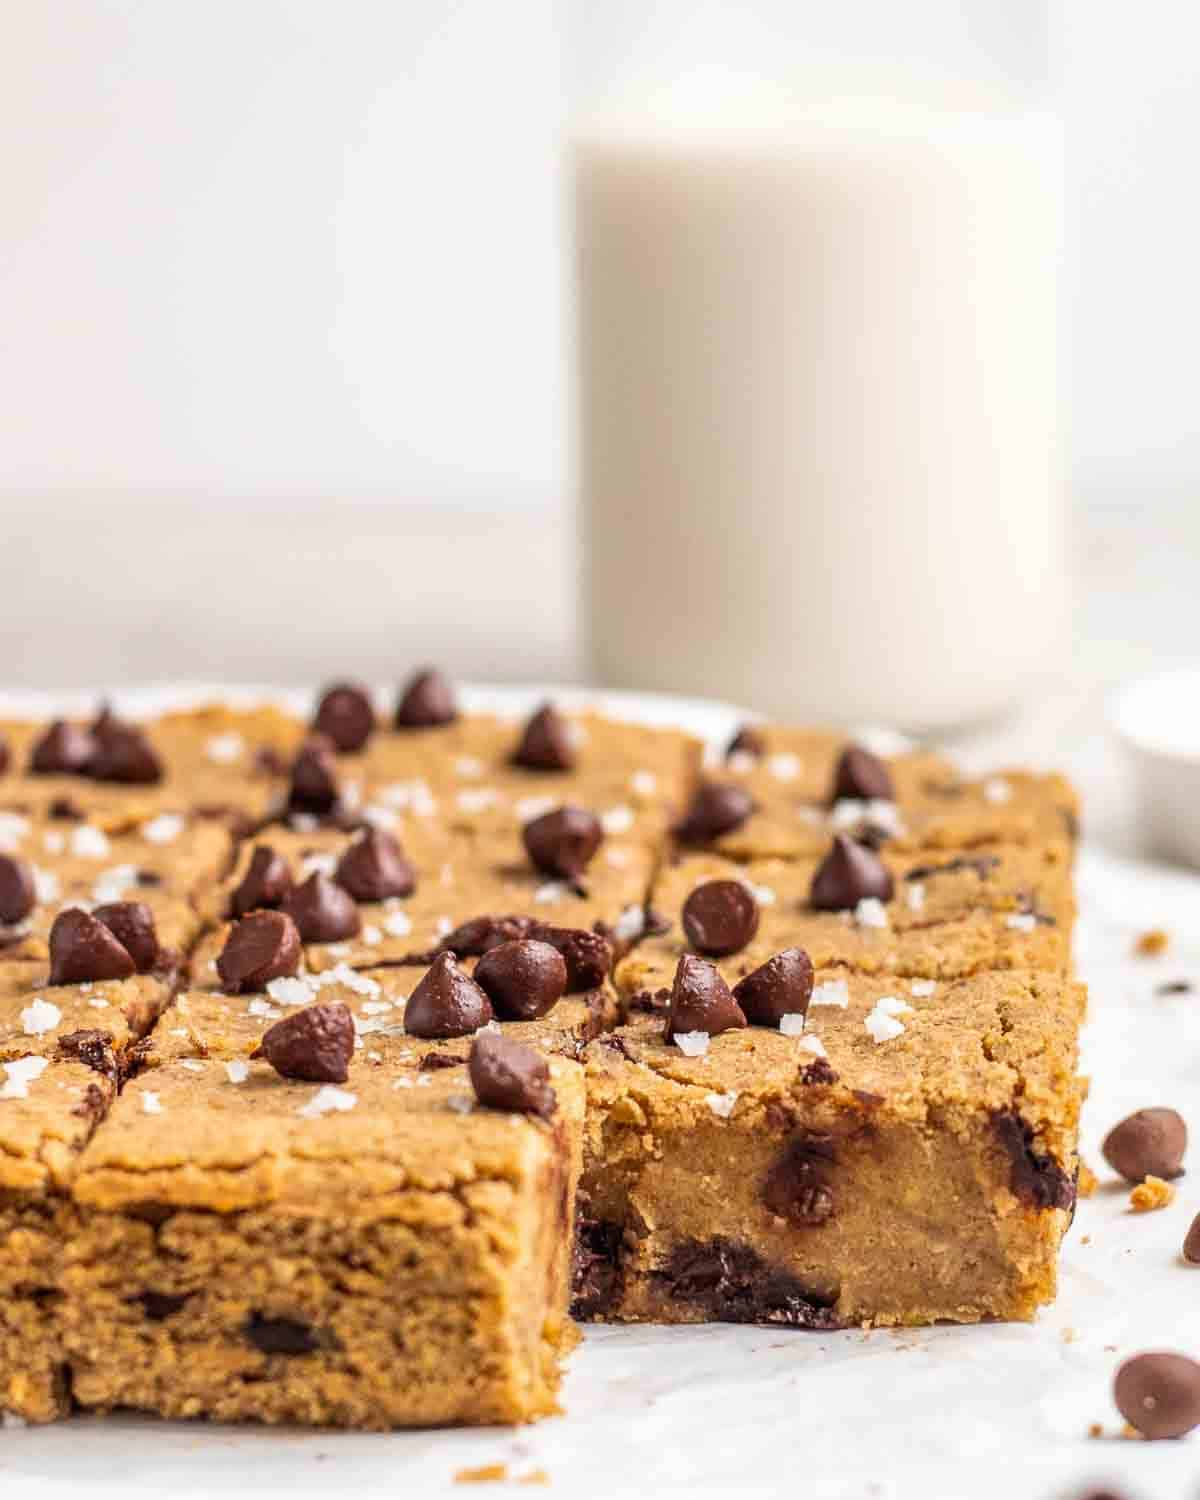 A tray of sliced chickpea blondies with chocolate chips and a jar of milk in the background.